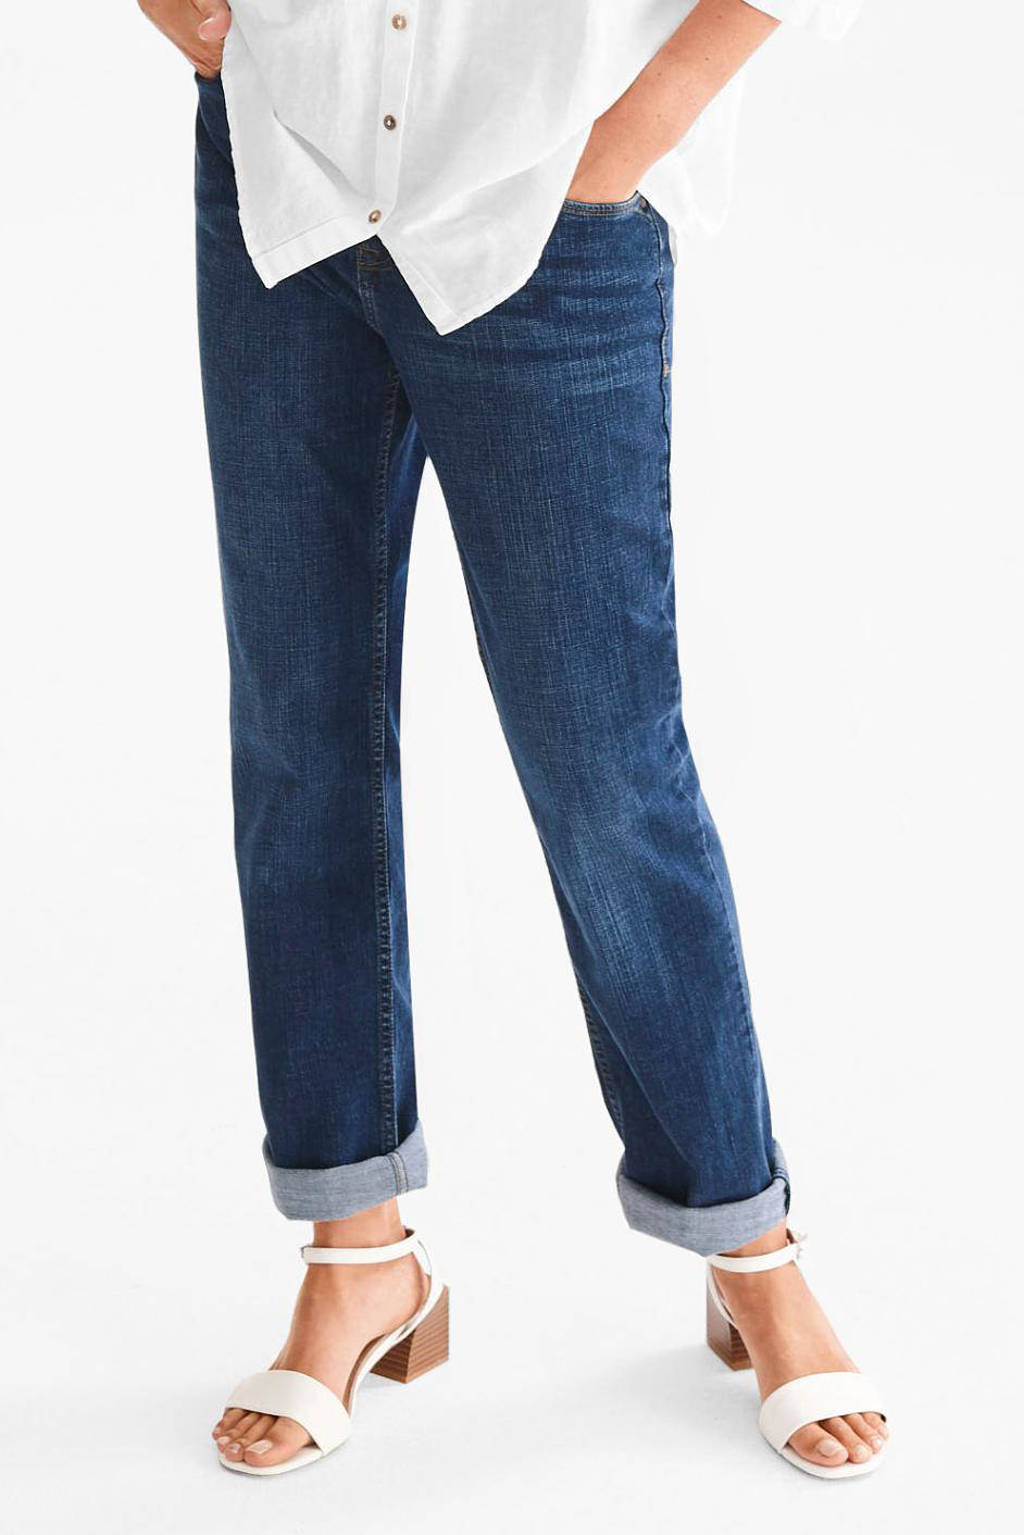 C&A The Denim straight fit jeans dark denim, Dark denim